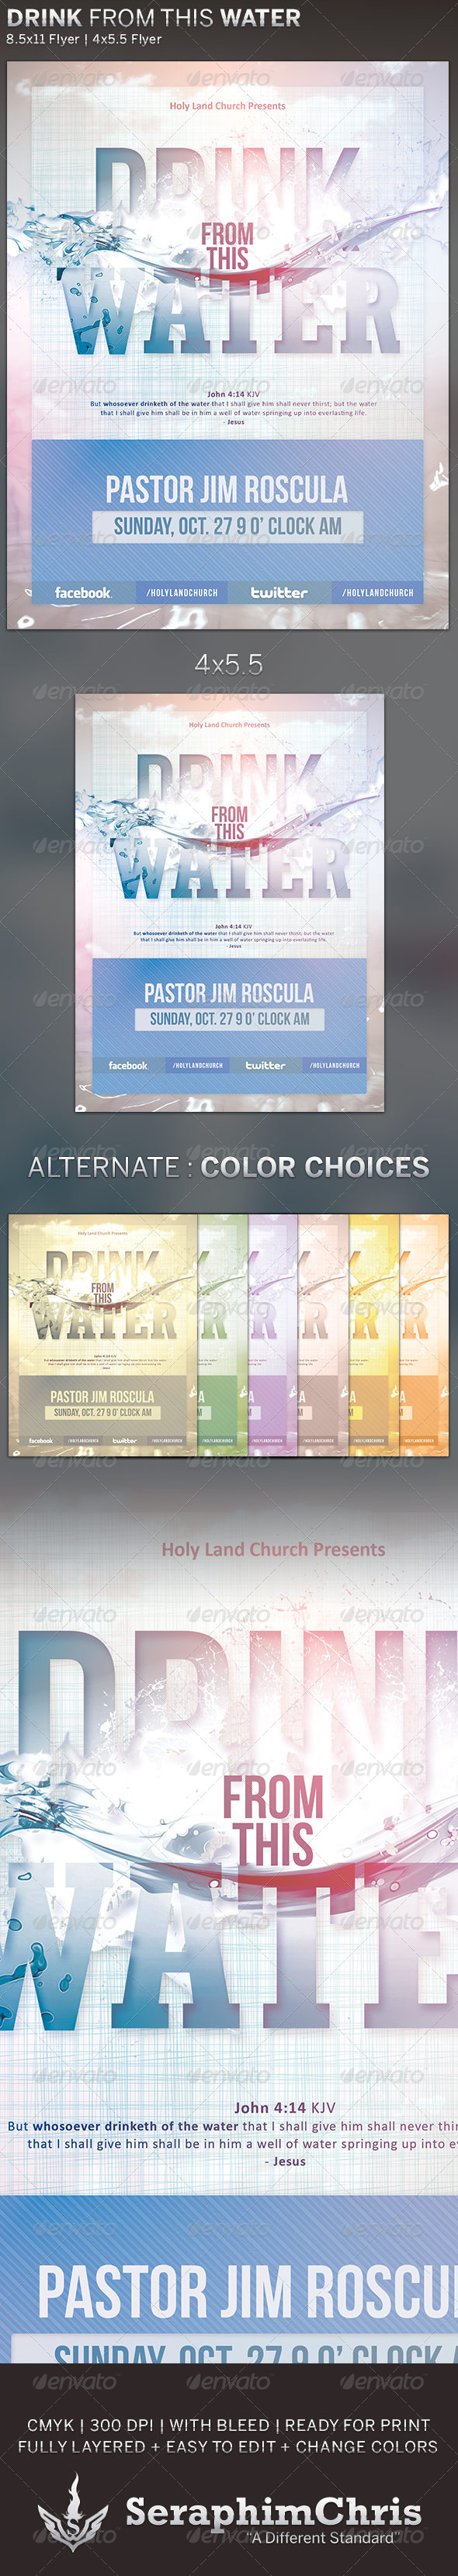 Drink from this Water: Church Flyer Template - Church Flyers